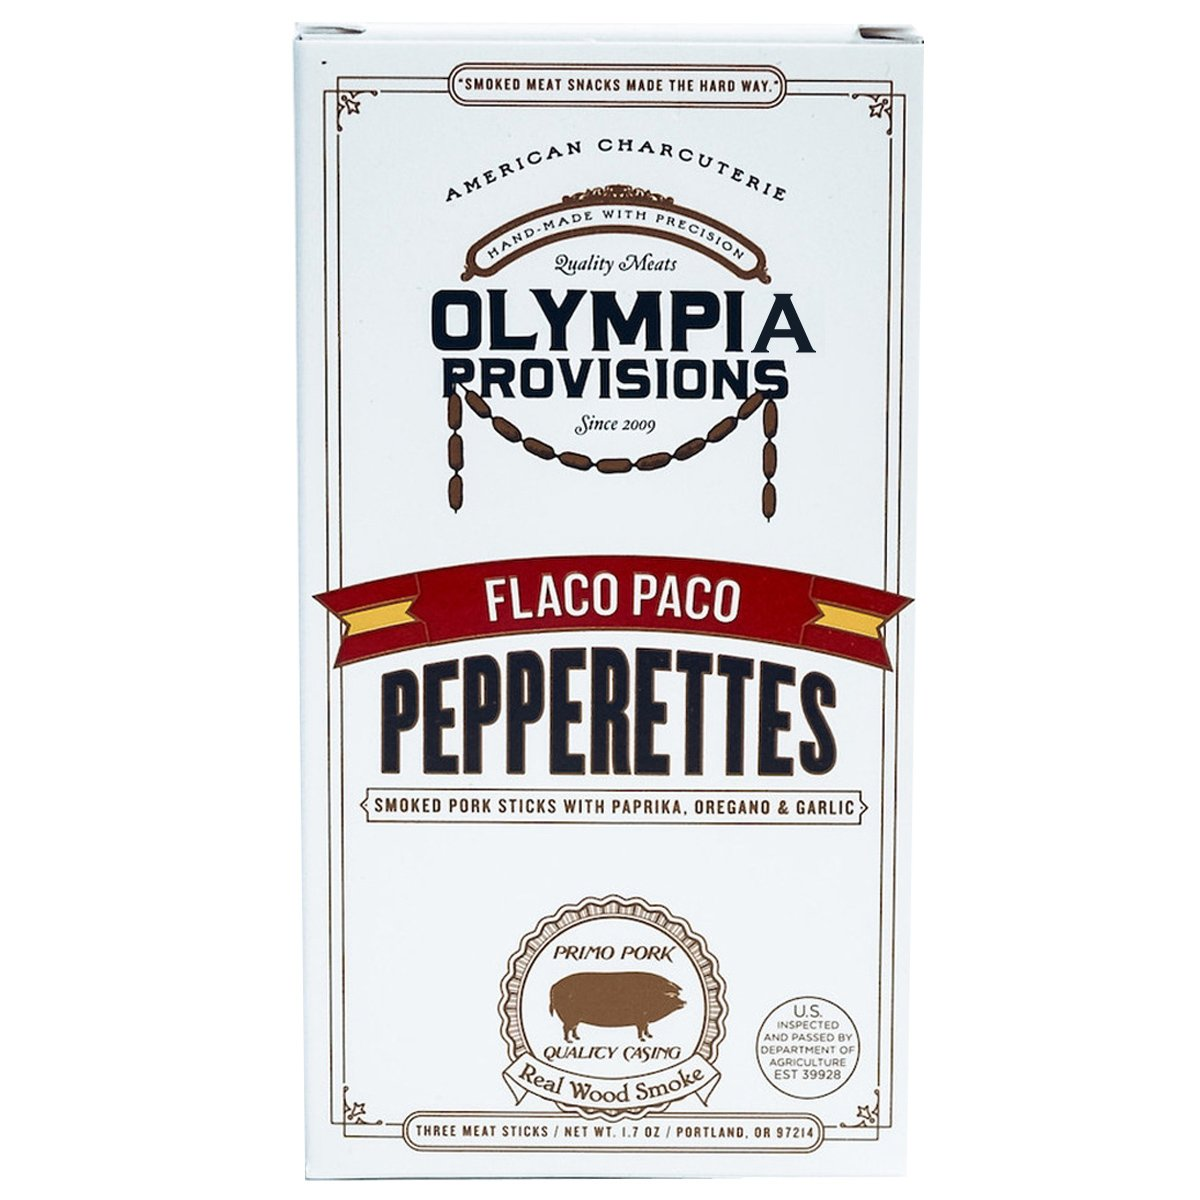 Olympia Provisions Flaco Paco Pepperettes - 2 Oz. (Pack of 3)